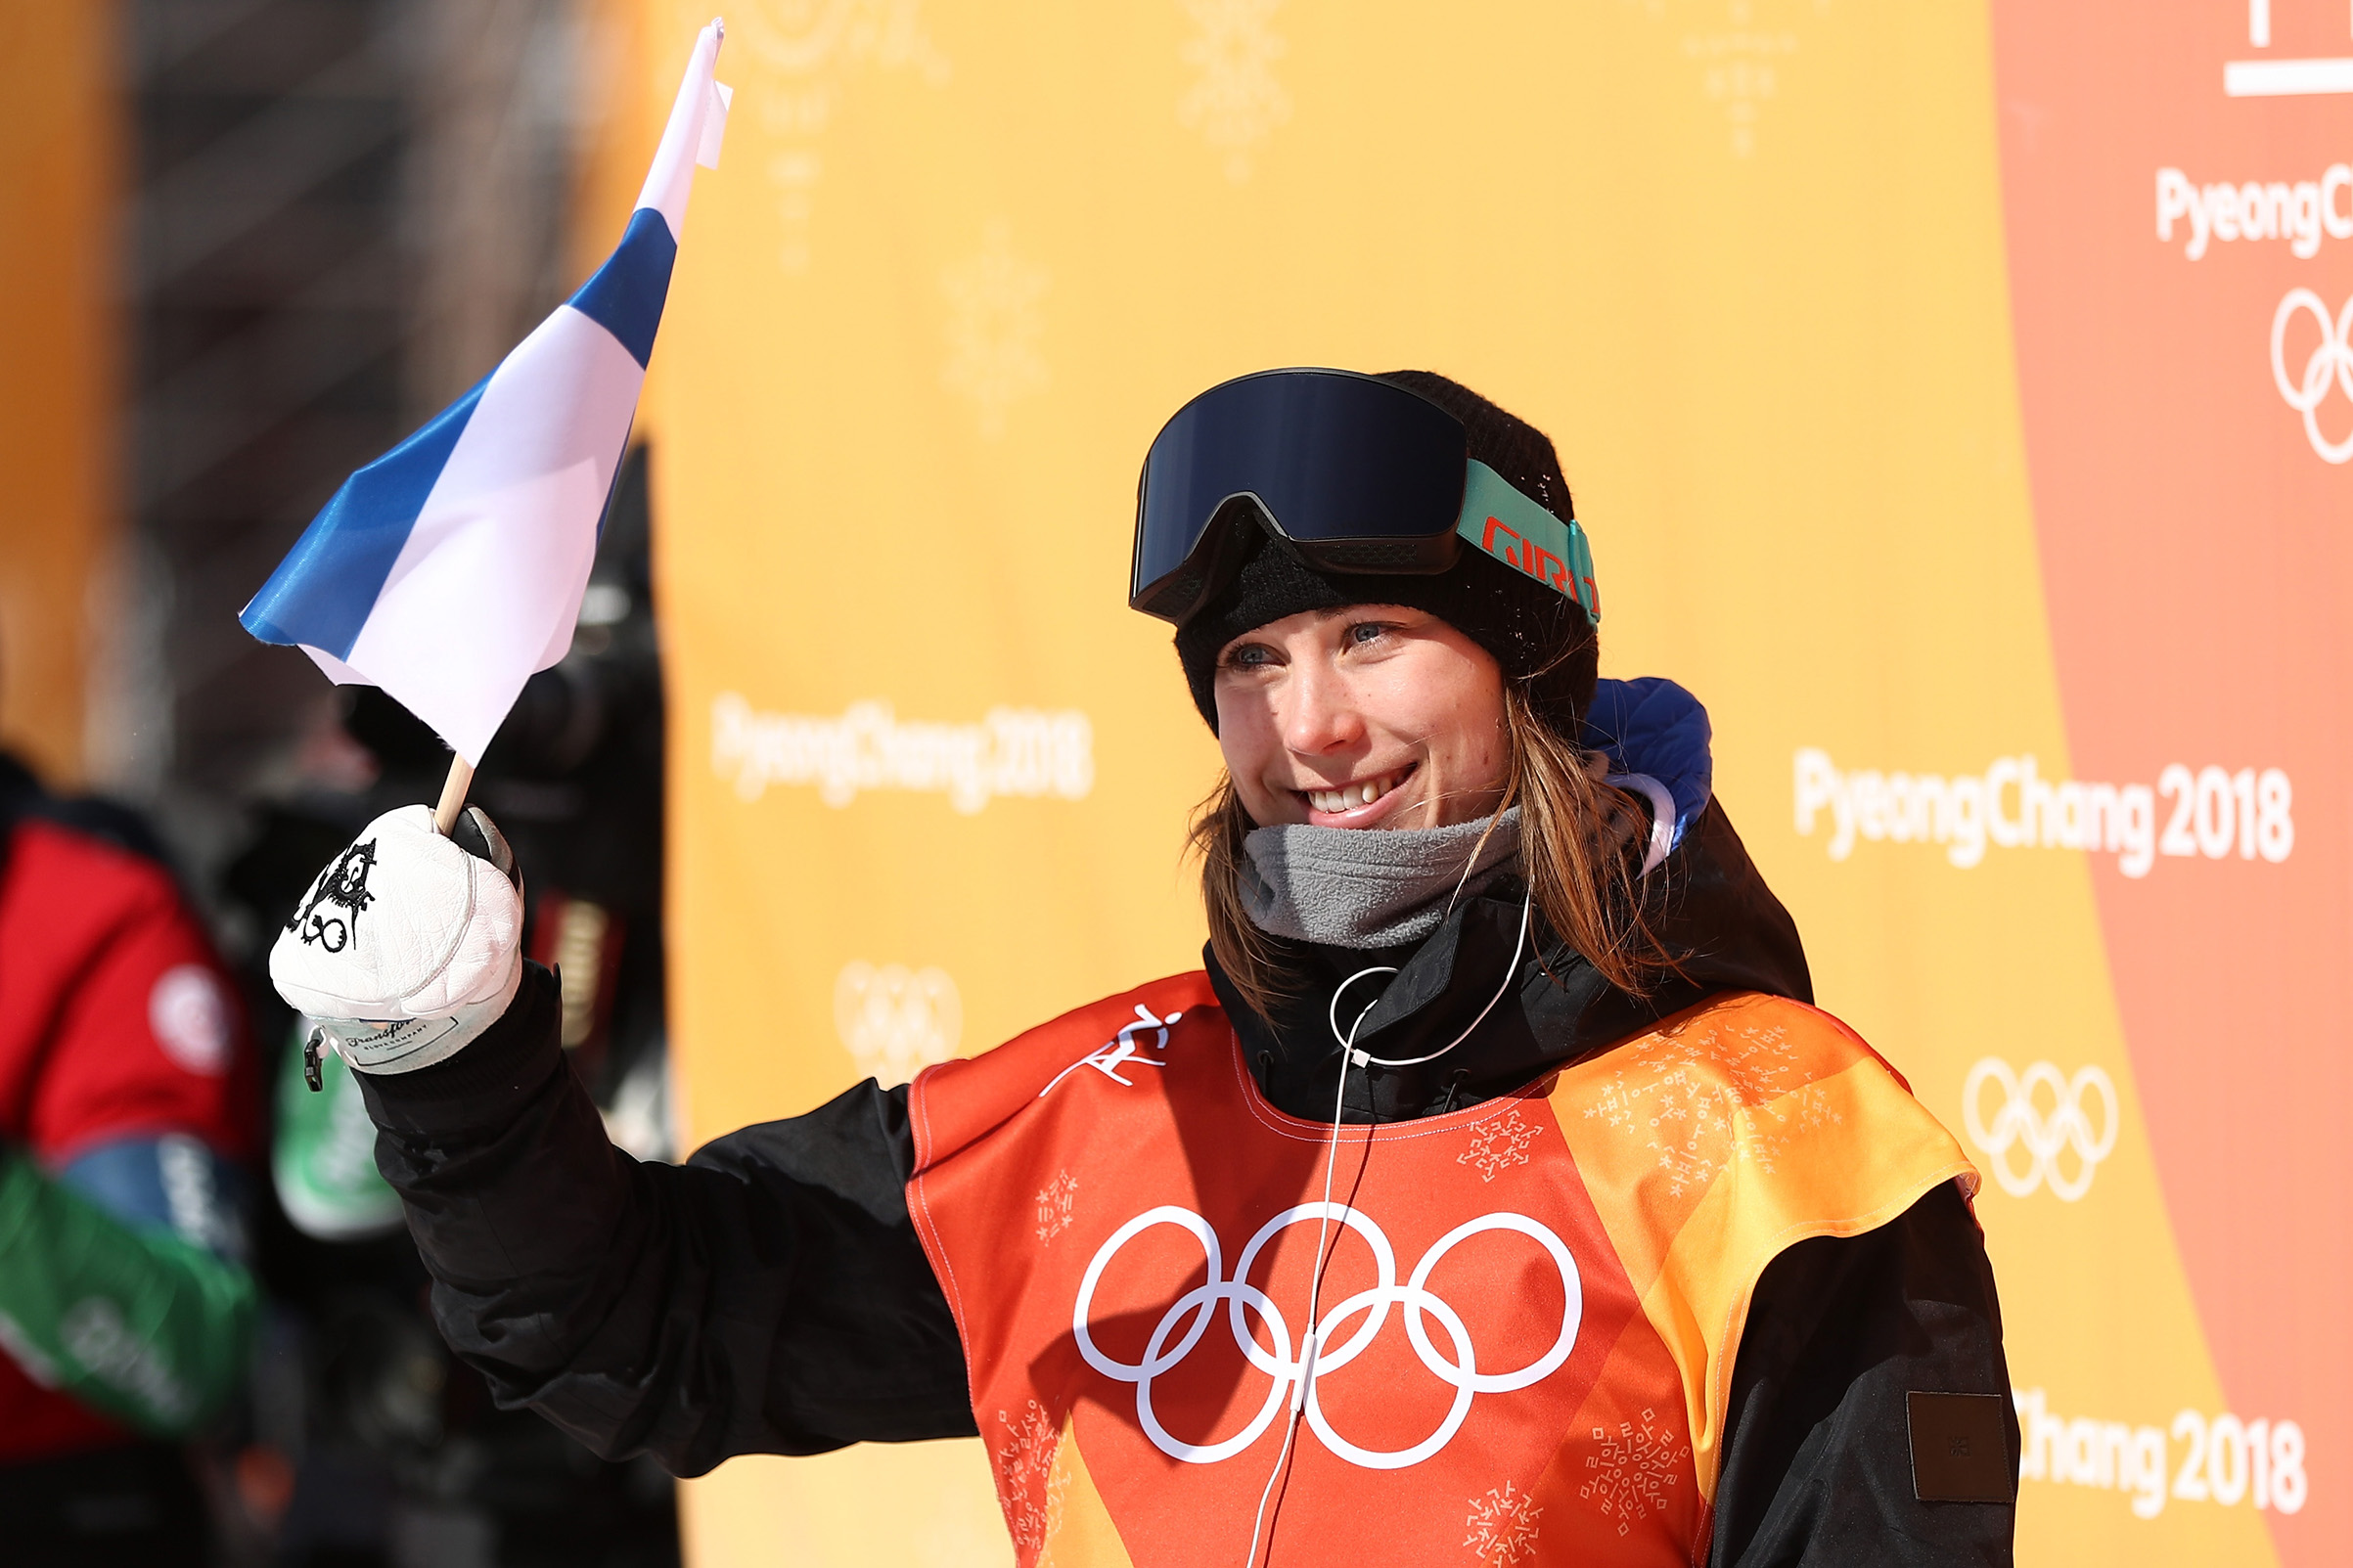 Bronze medalist Enni Rukajarvi of Finland celebrates in the Snowboard Ladies' Slopestyle Final on Feb. 12, 2018.